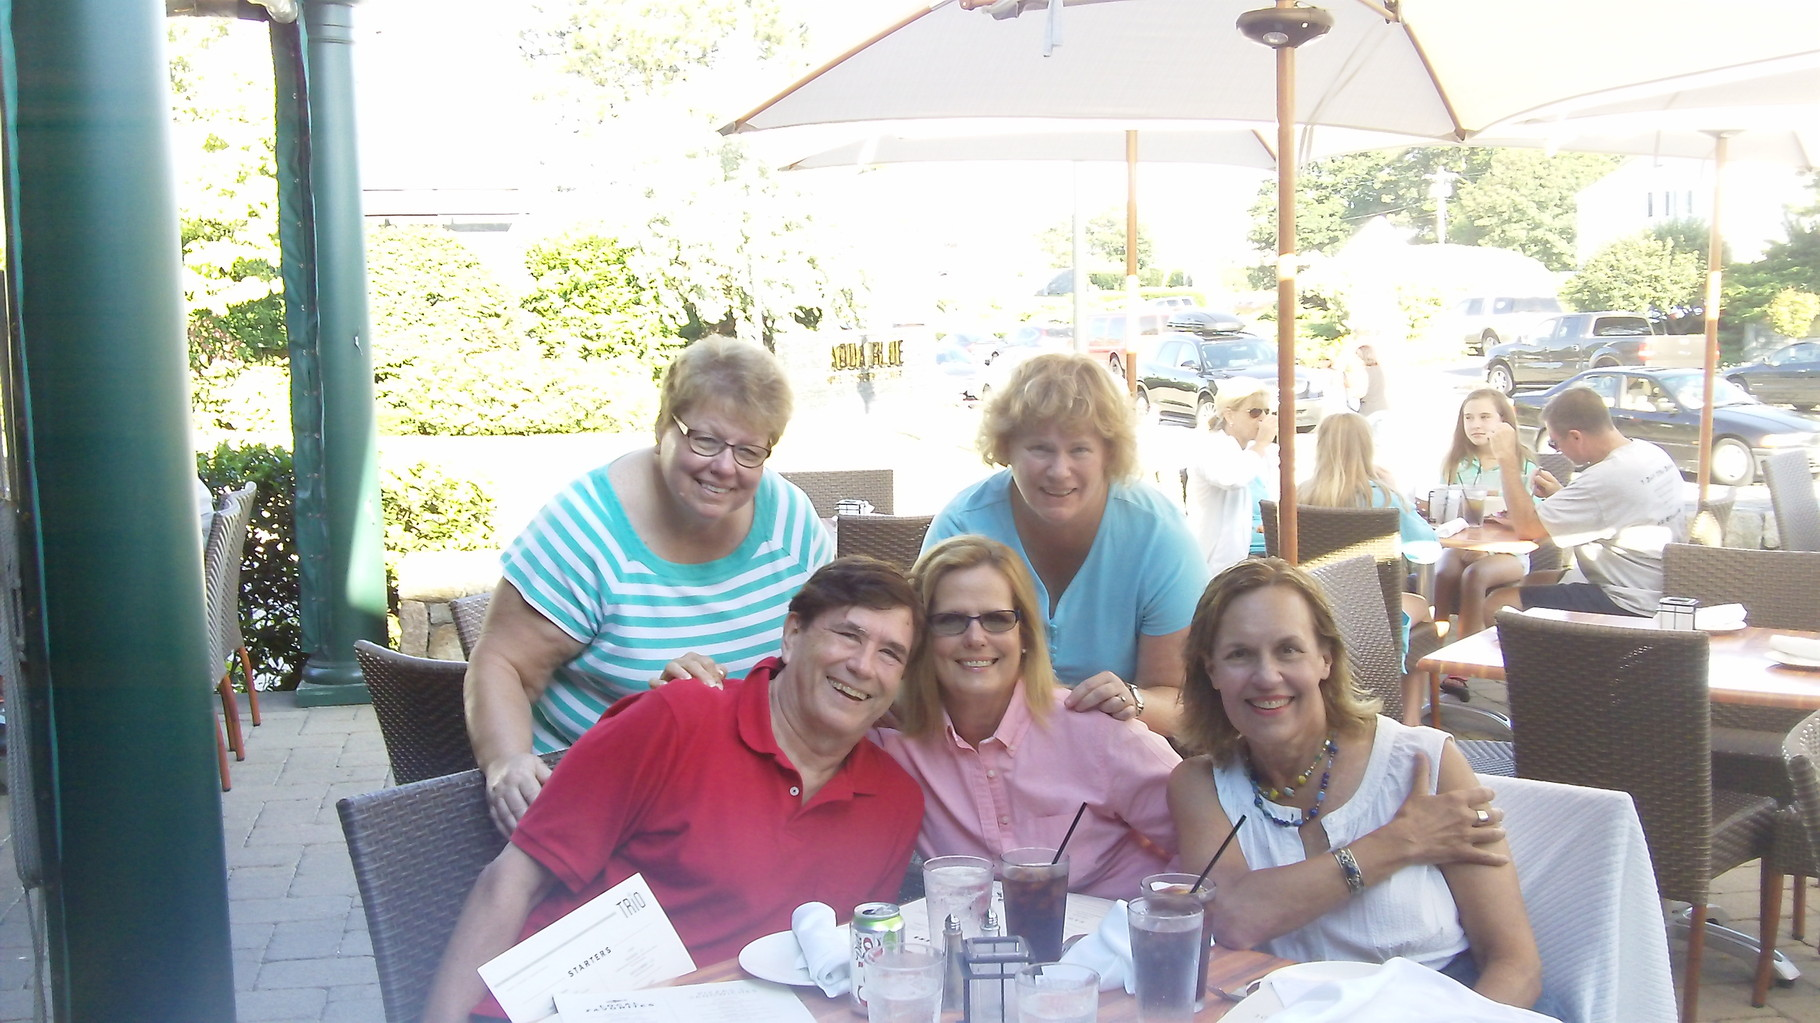 Margaret, John, Carol, Jane & Lorraine   The Cousins at Narragansett, Aug. 2015